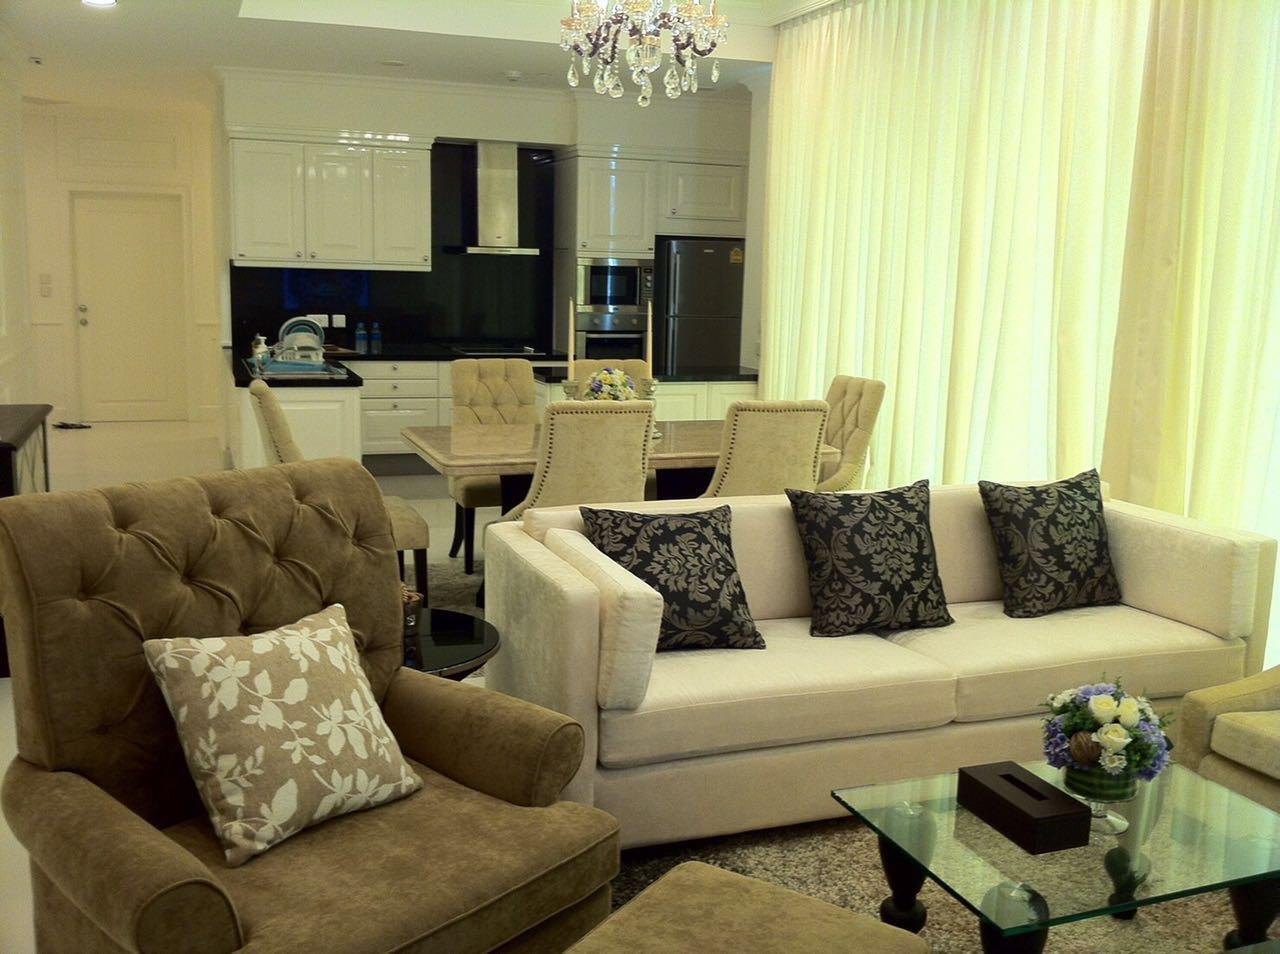 Right Move Thailand Agency's CA5479 Royce Private Residence For sale - 23,900,000 THB - 2 Bedroom - 112 SQM 2